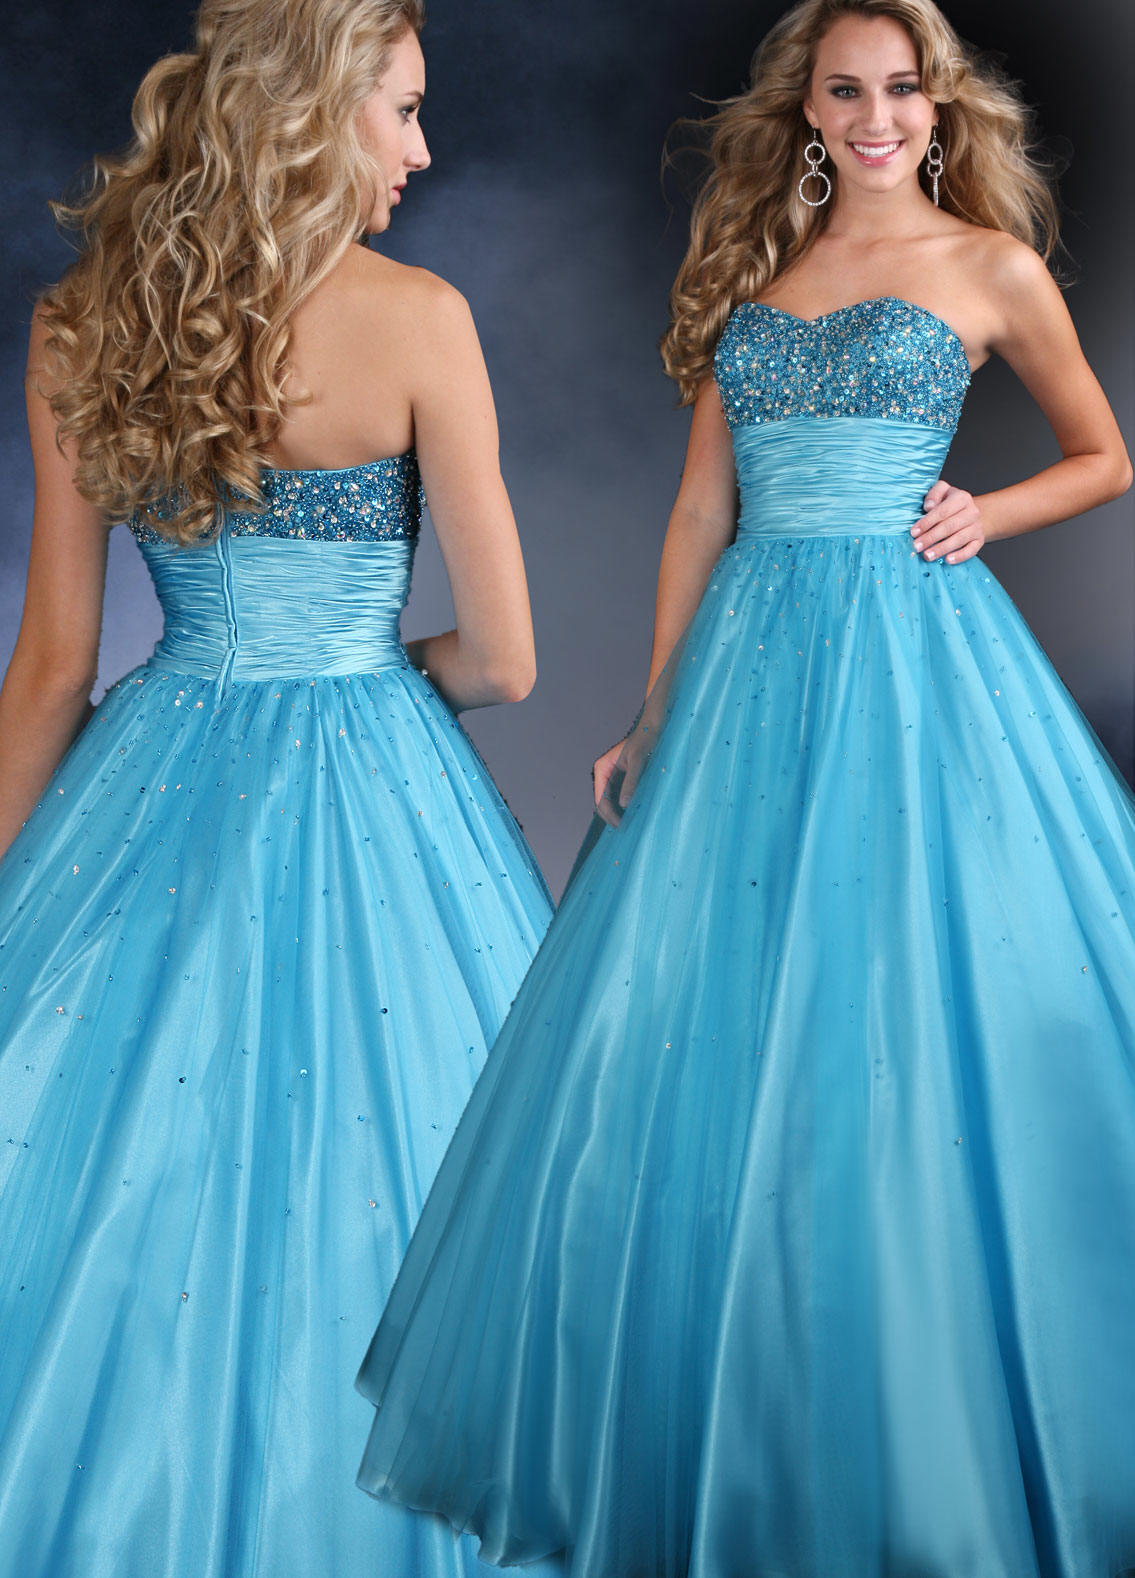 Wedding Ballroom Gowns prom dresses ballroom gowns plus size 93